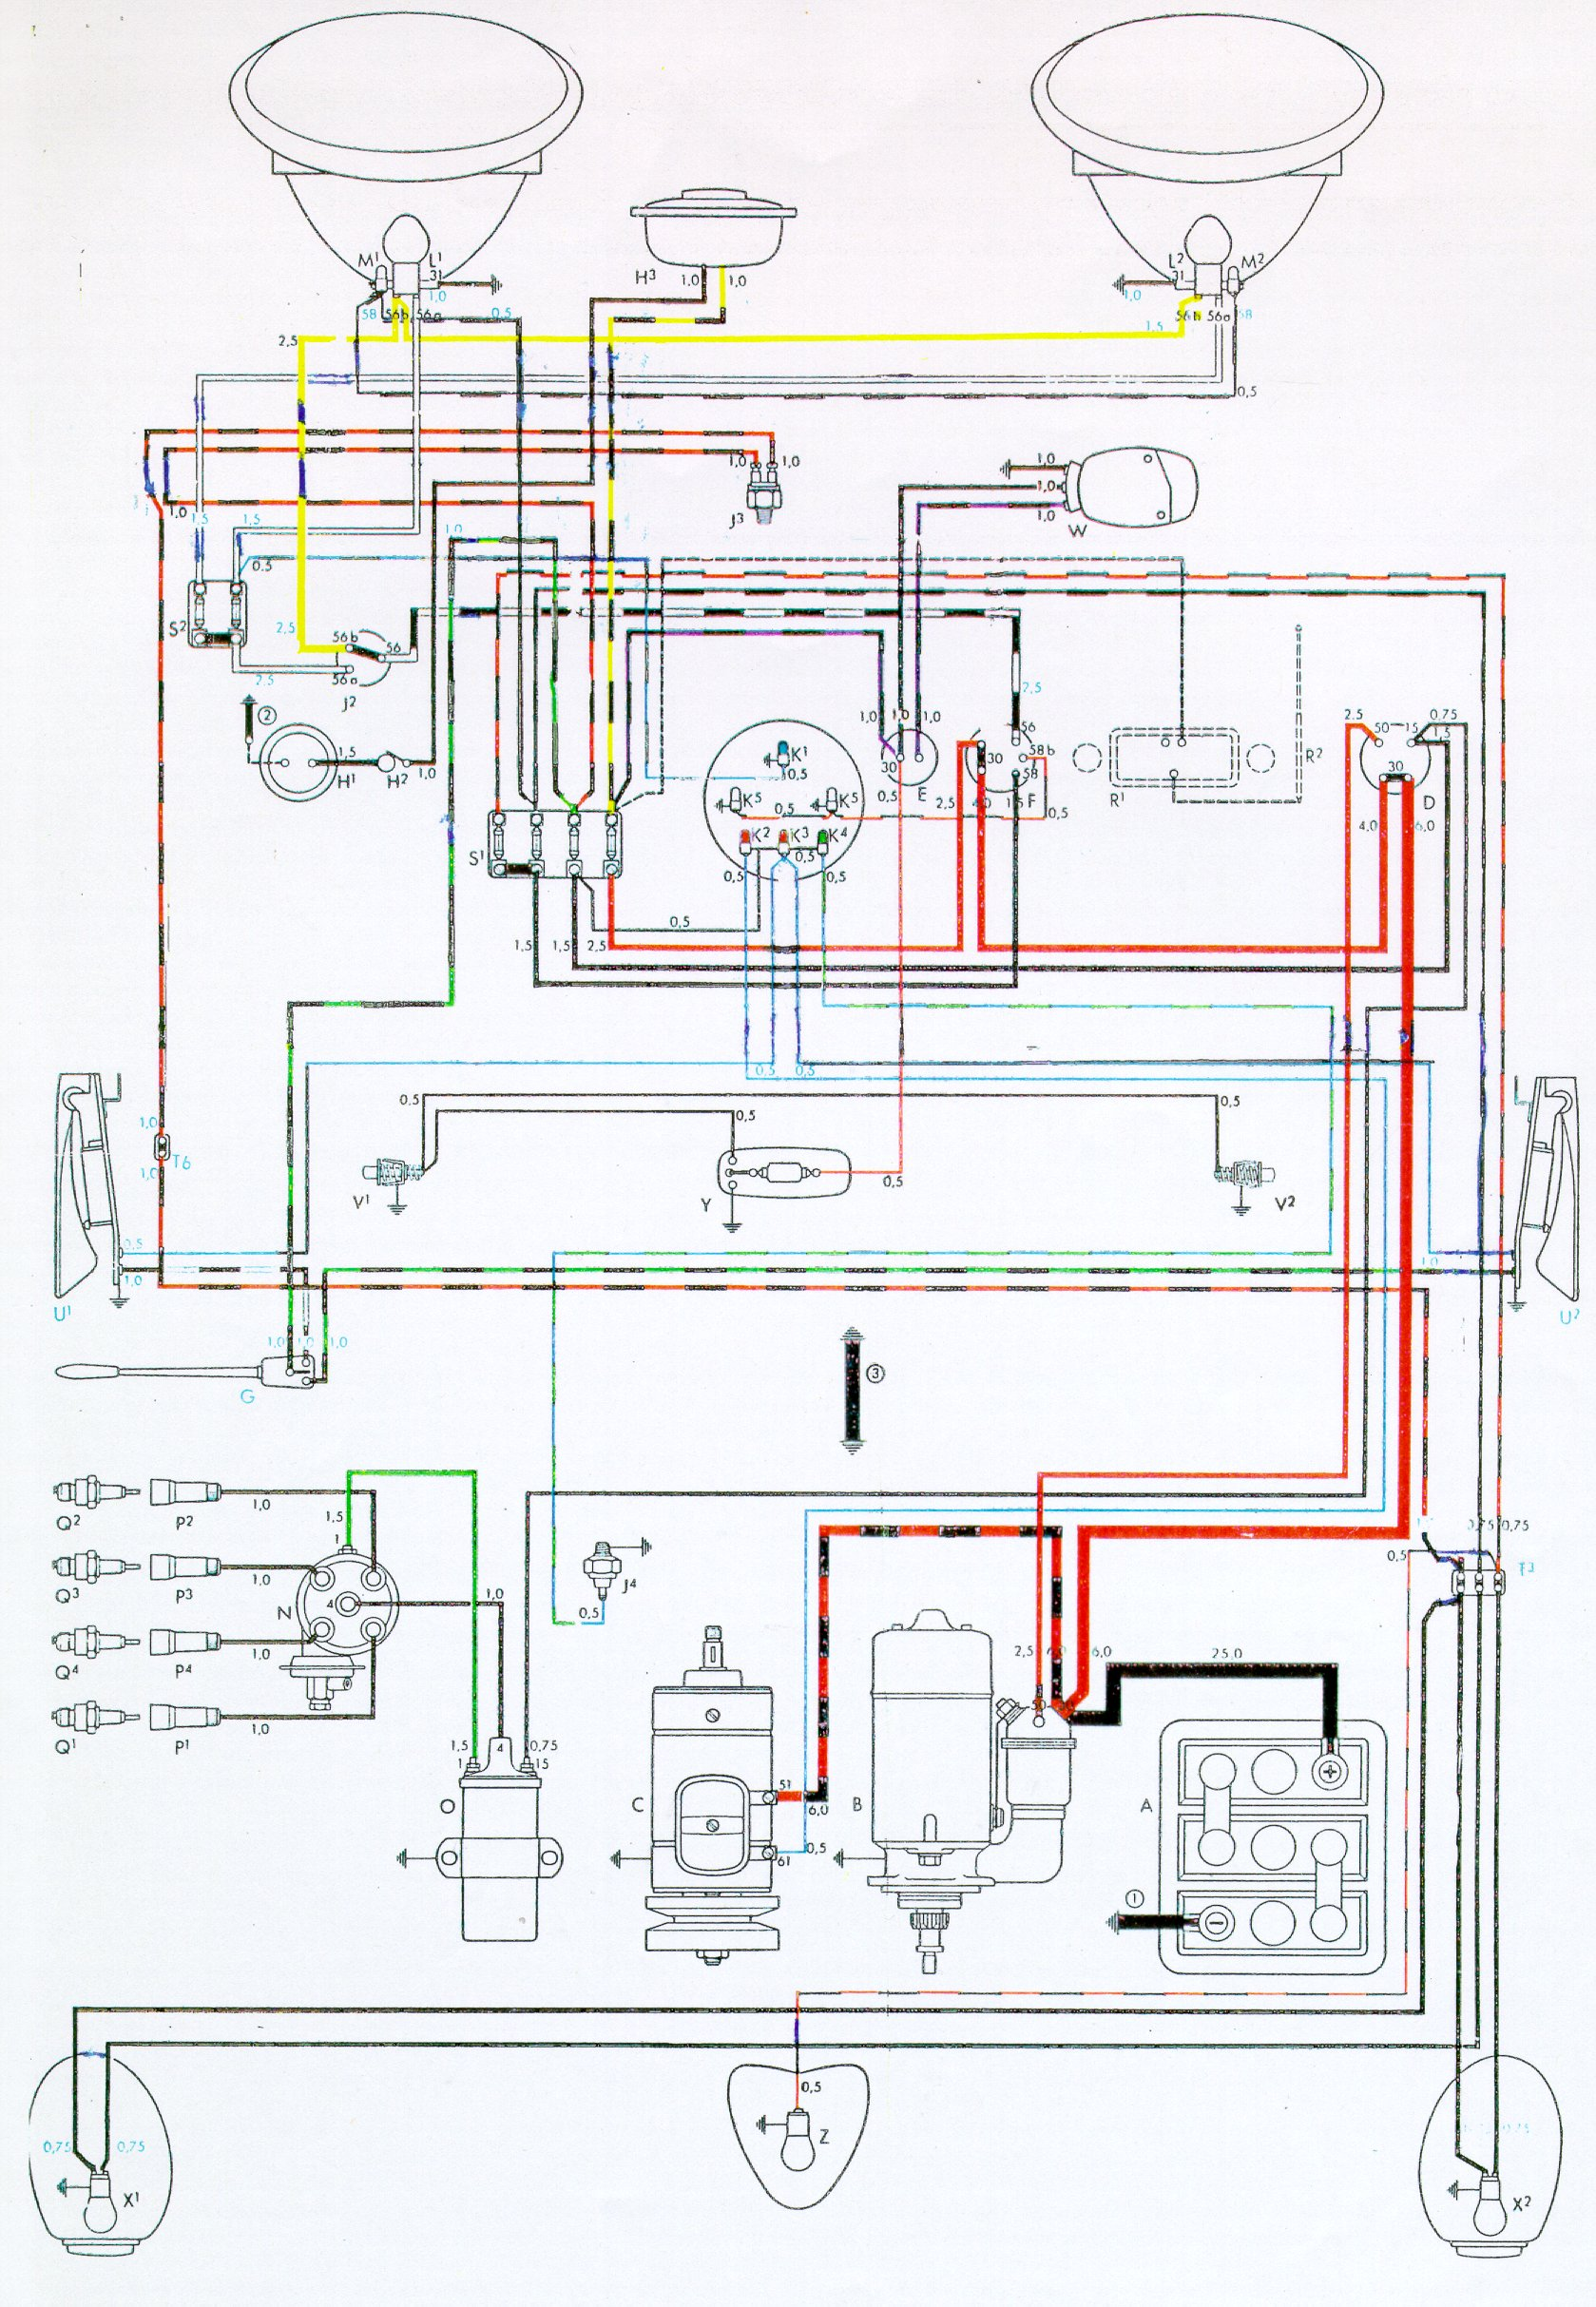 bug 54 vw wiring diagrams wiring diagram for 1972 vw beetle at sewacar.co